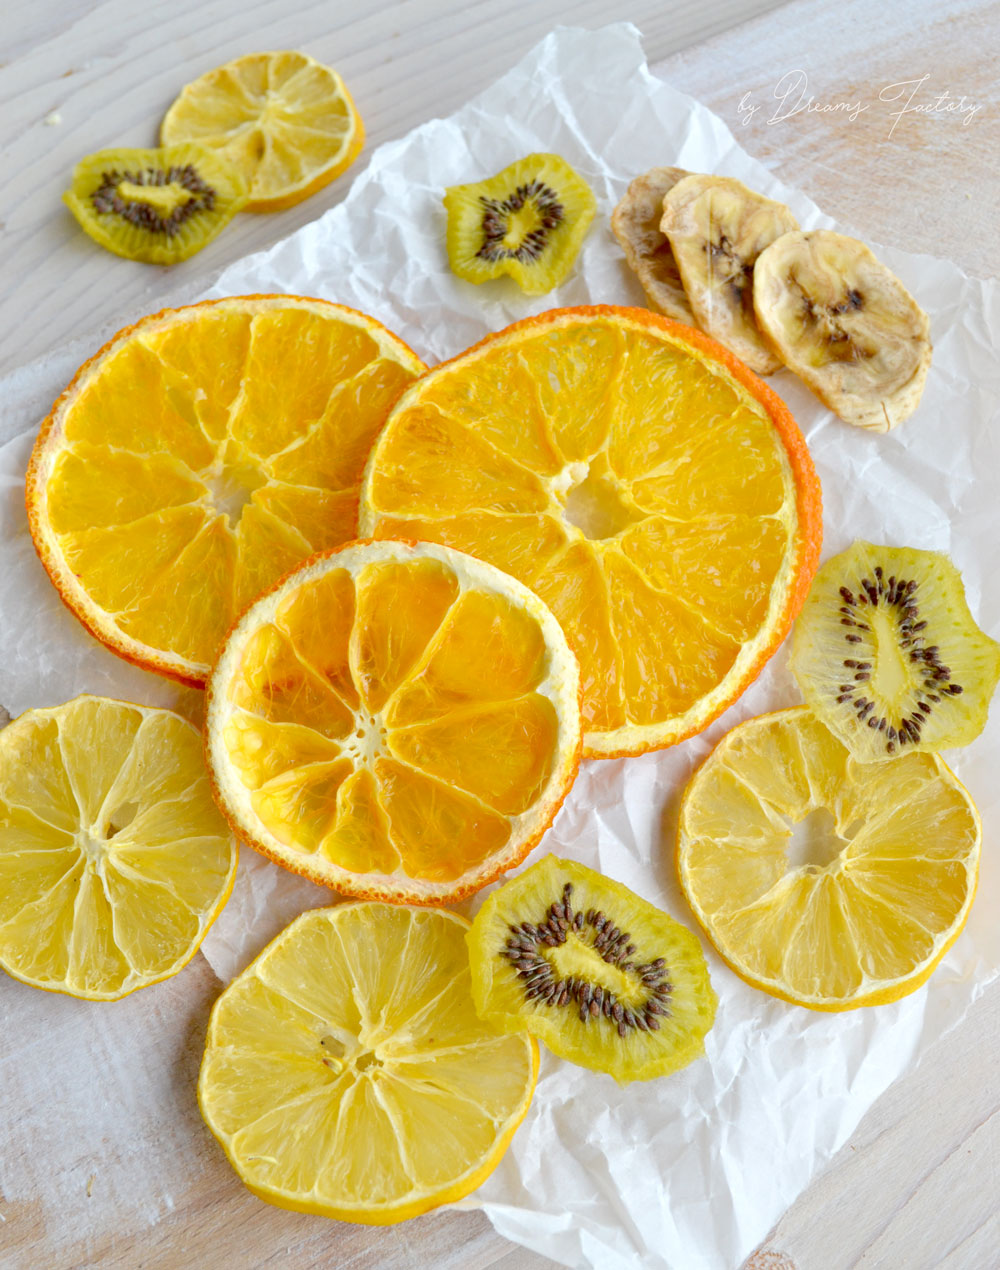 Using a dehydrator Froothie Optimum P200 dehydrator product review - dehydrating fruits www.bydreamsfactory.com